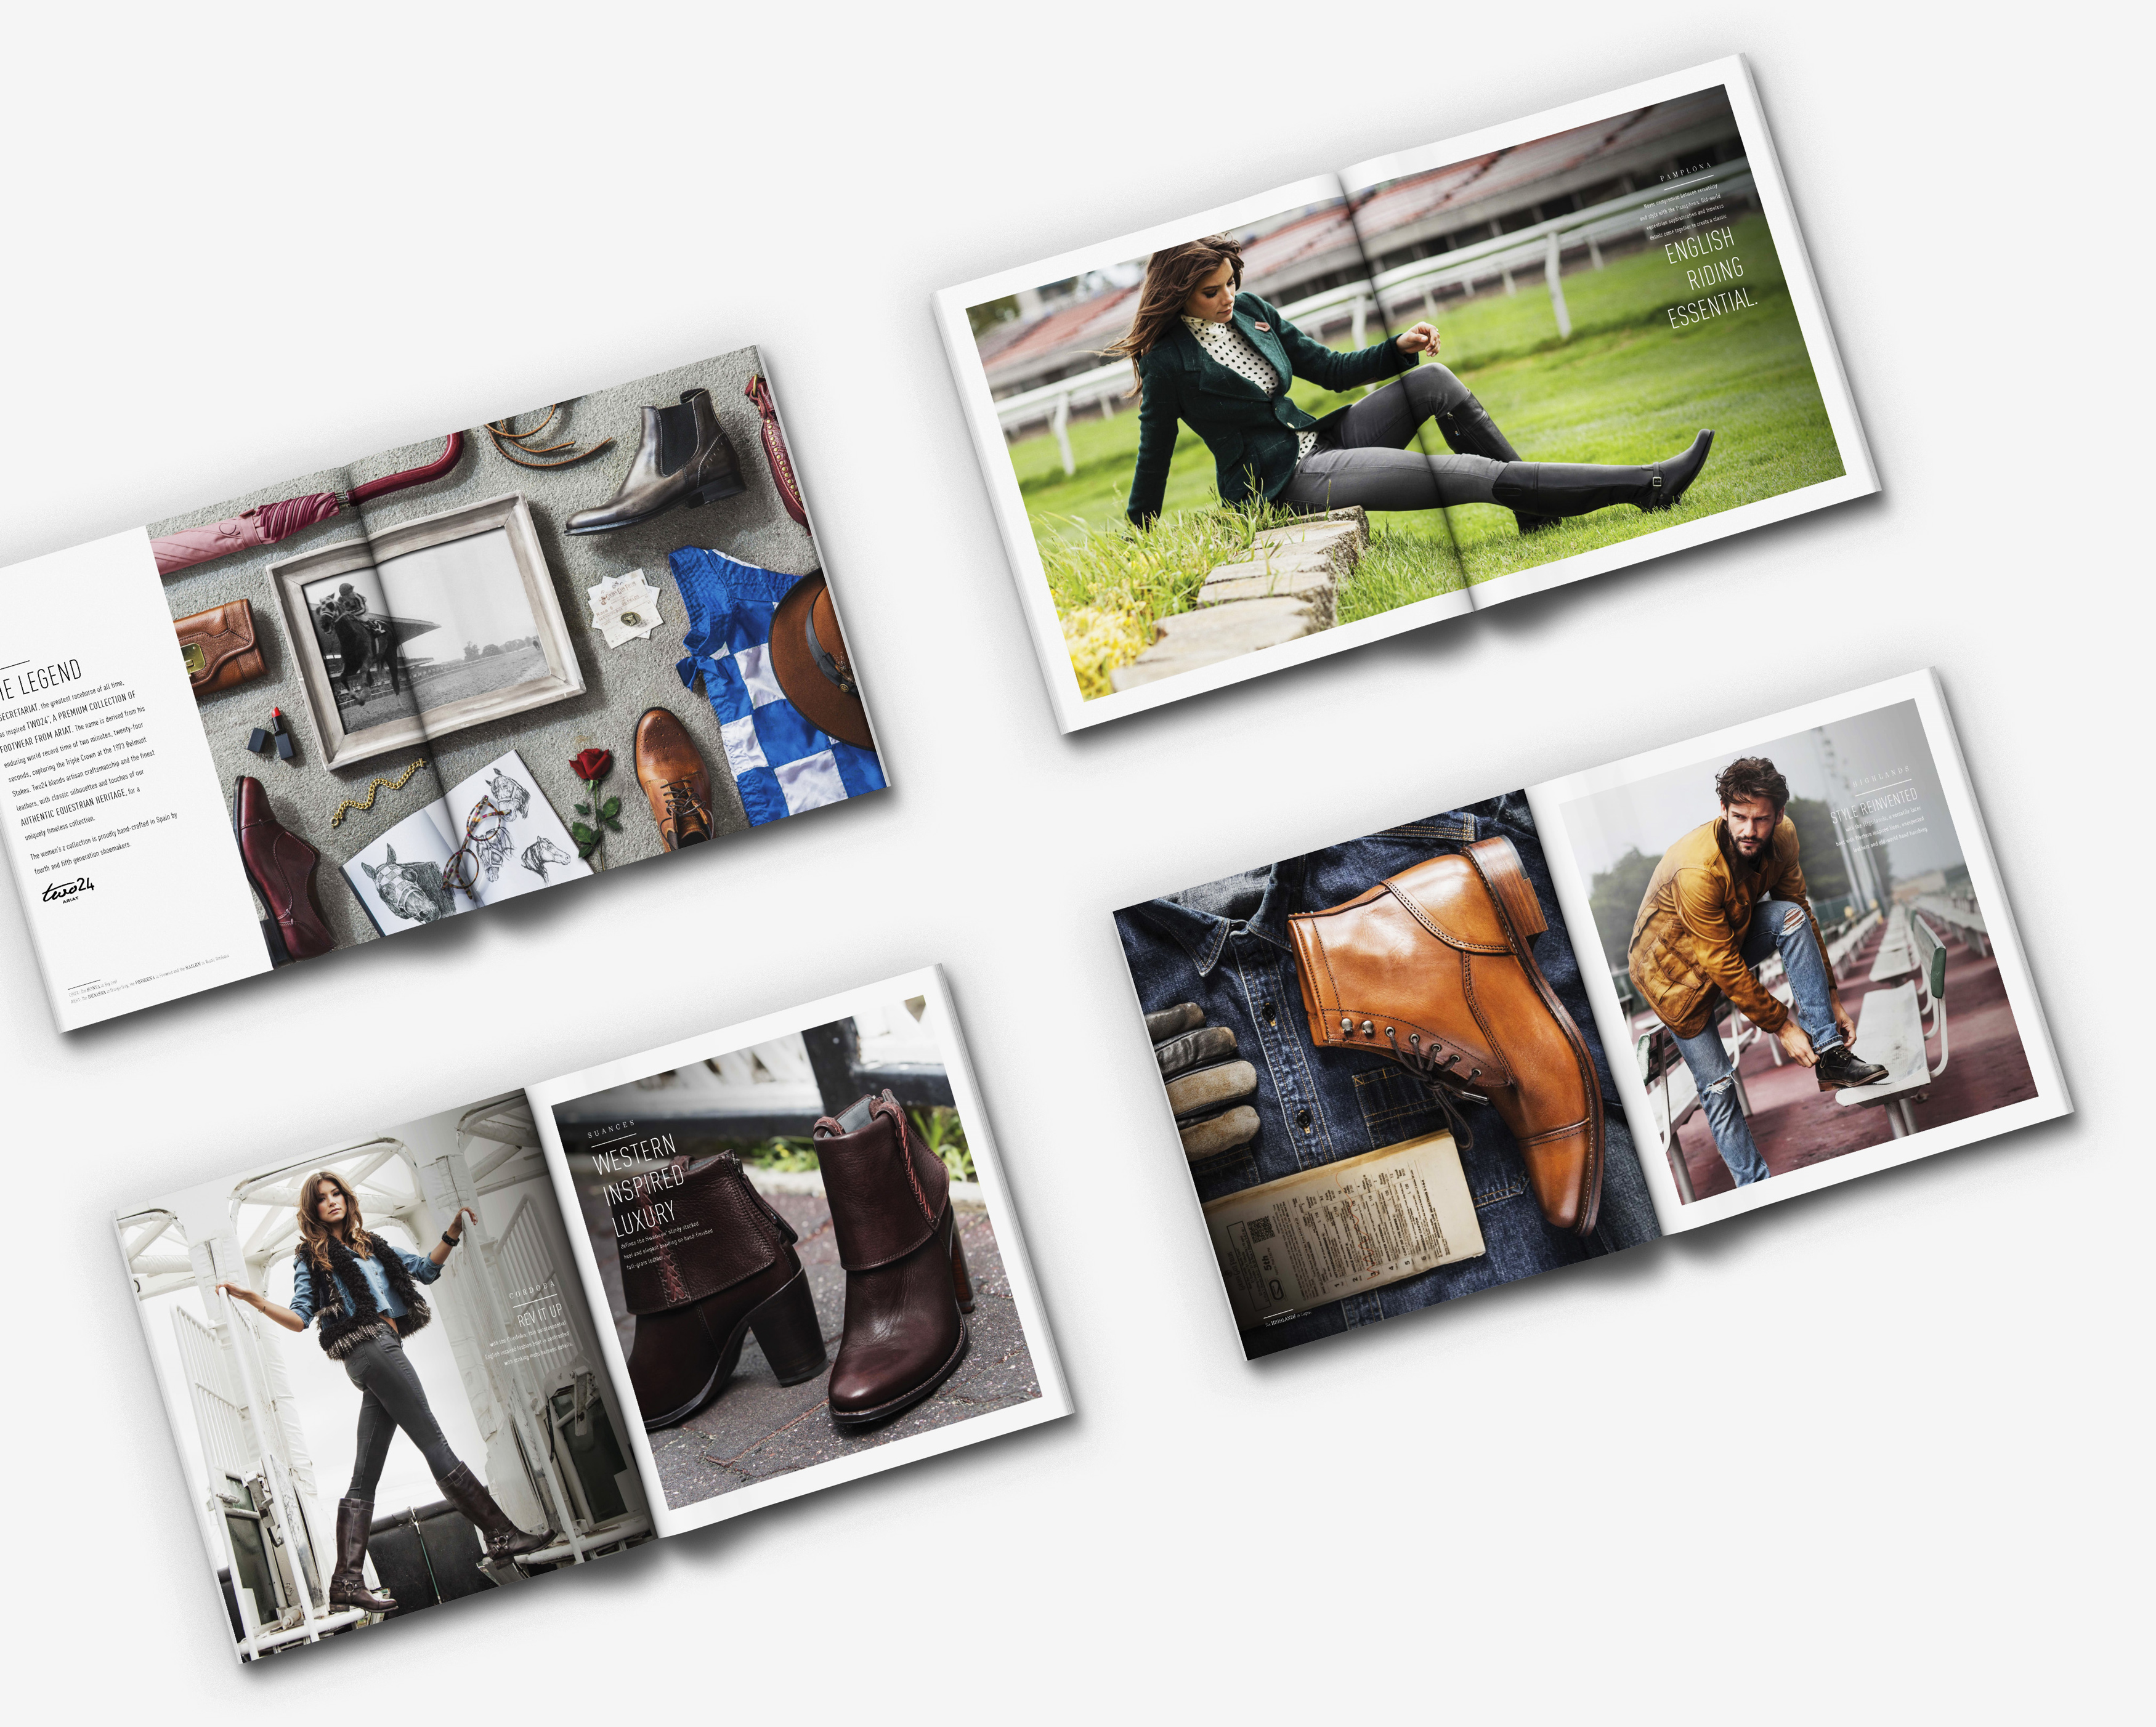 Several spreads of Ariat two 24 fashion magazine with men and girl posing with fashionable boots